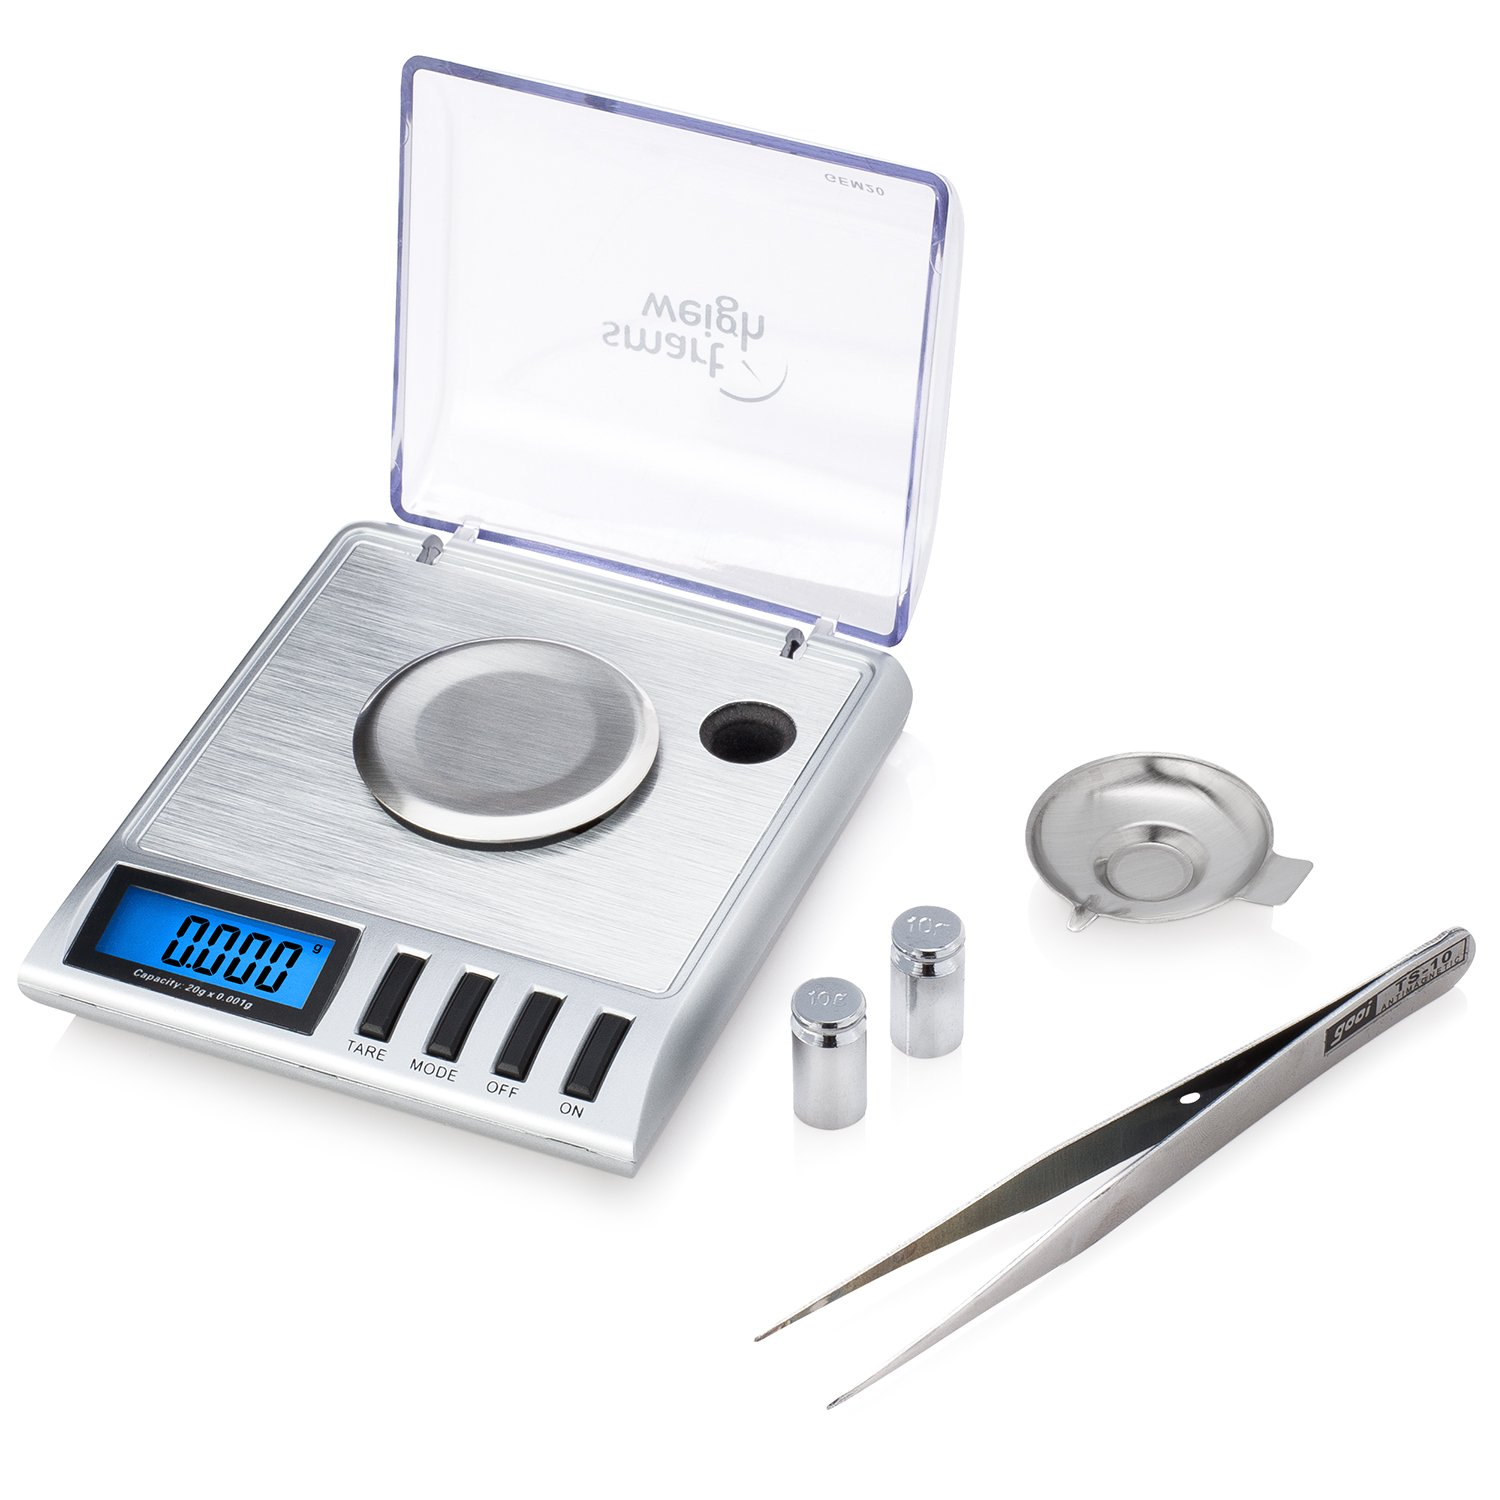 Smart Weigh GEM20 High Precision Digital Milligram Jewelry Scale, 20 x 0.001 Gram, Reloading, Jewelry and Gems Scale, Calibration Weights and Tweezers Included